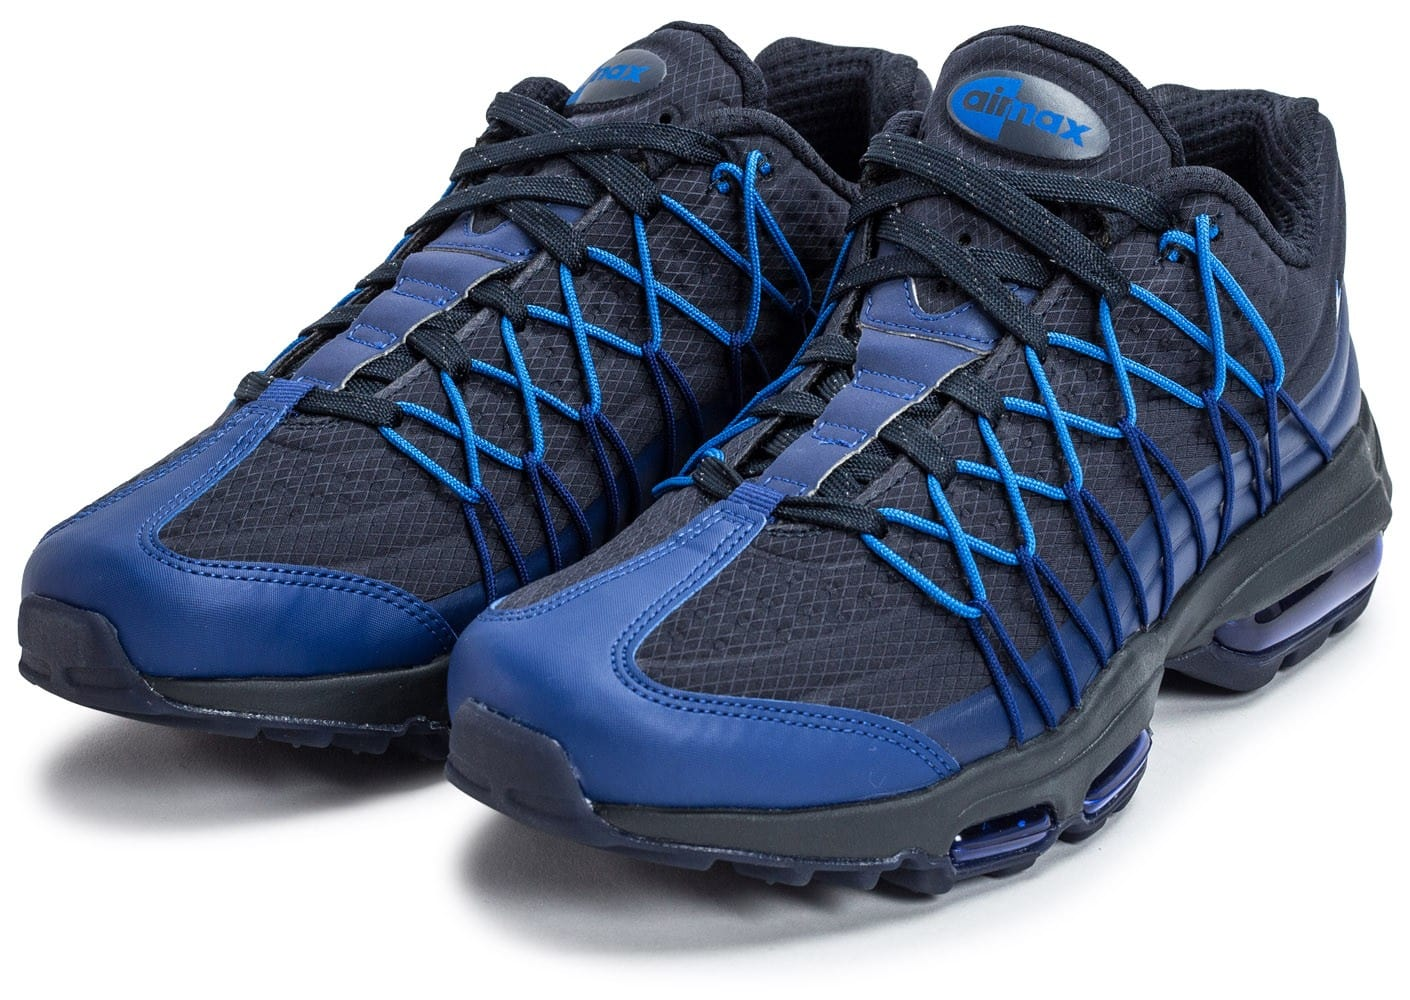 buy popular 3093c 6e12c ... chaussures nike air max 95 ultra se bleu marine vue avant